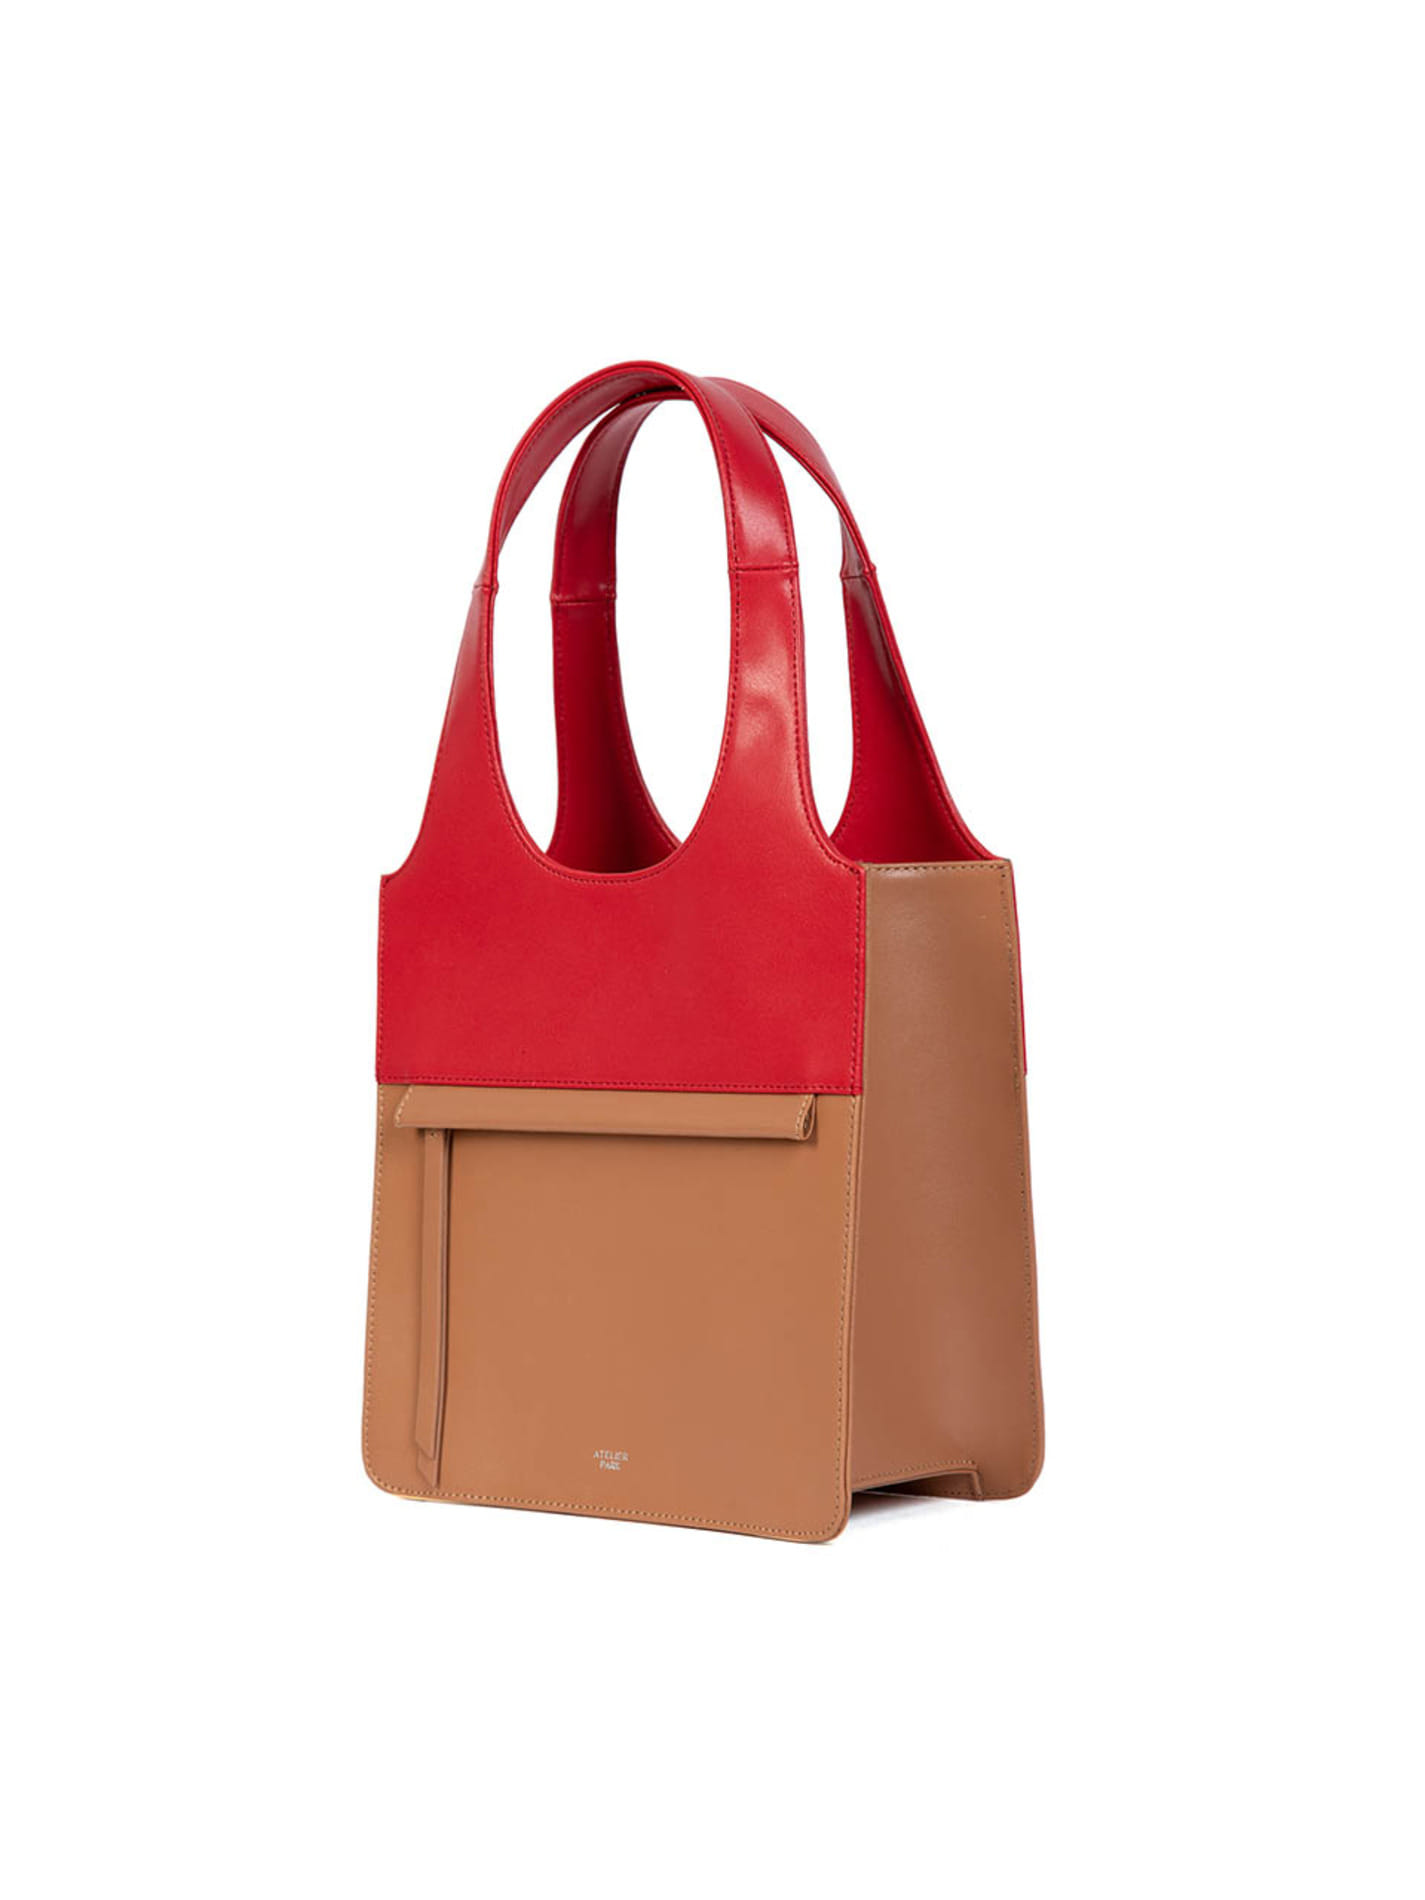 LINE TOTE BAG - MINI _ Beige